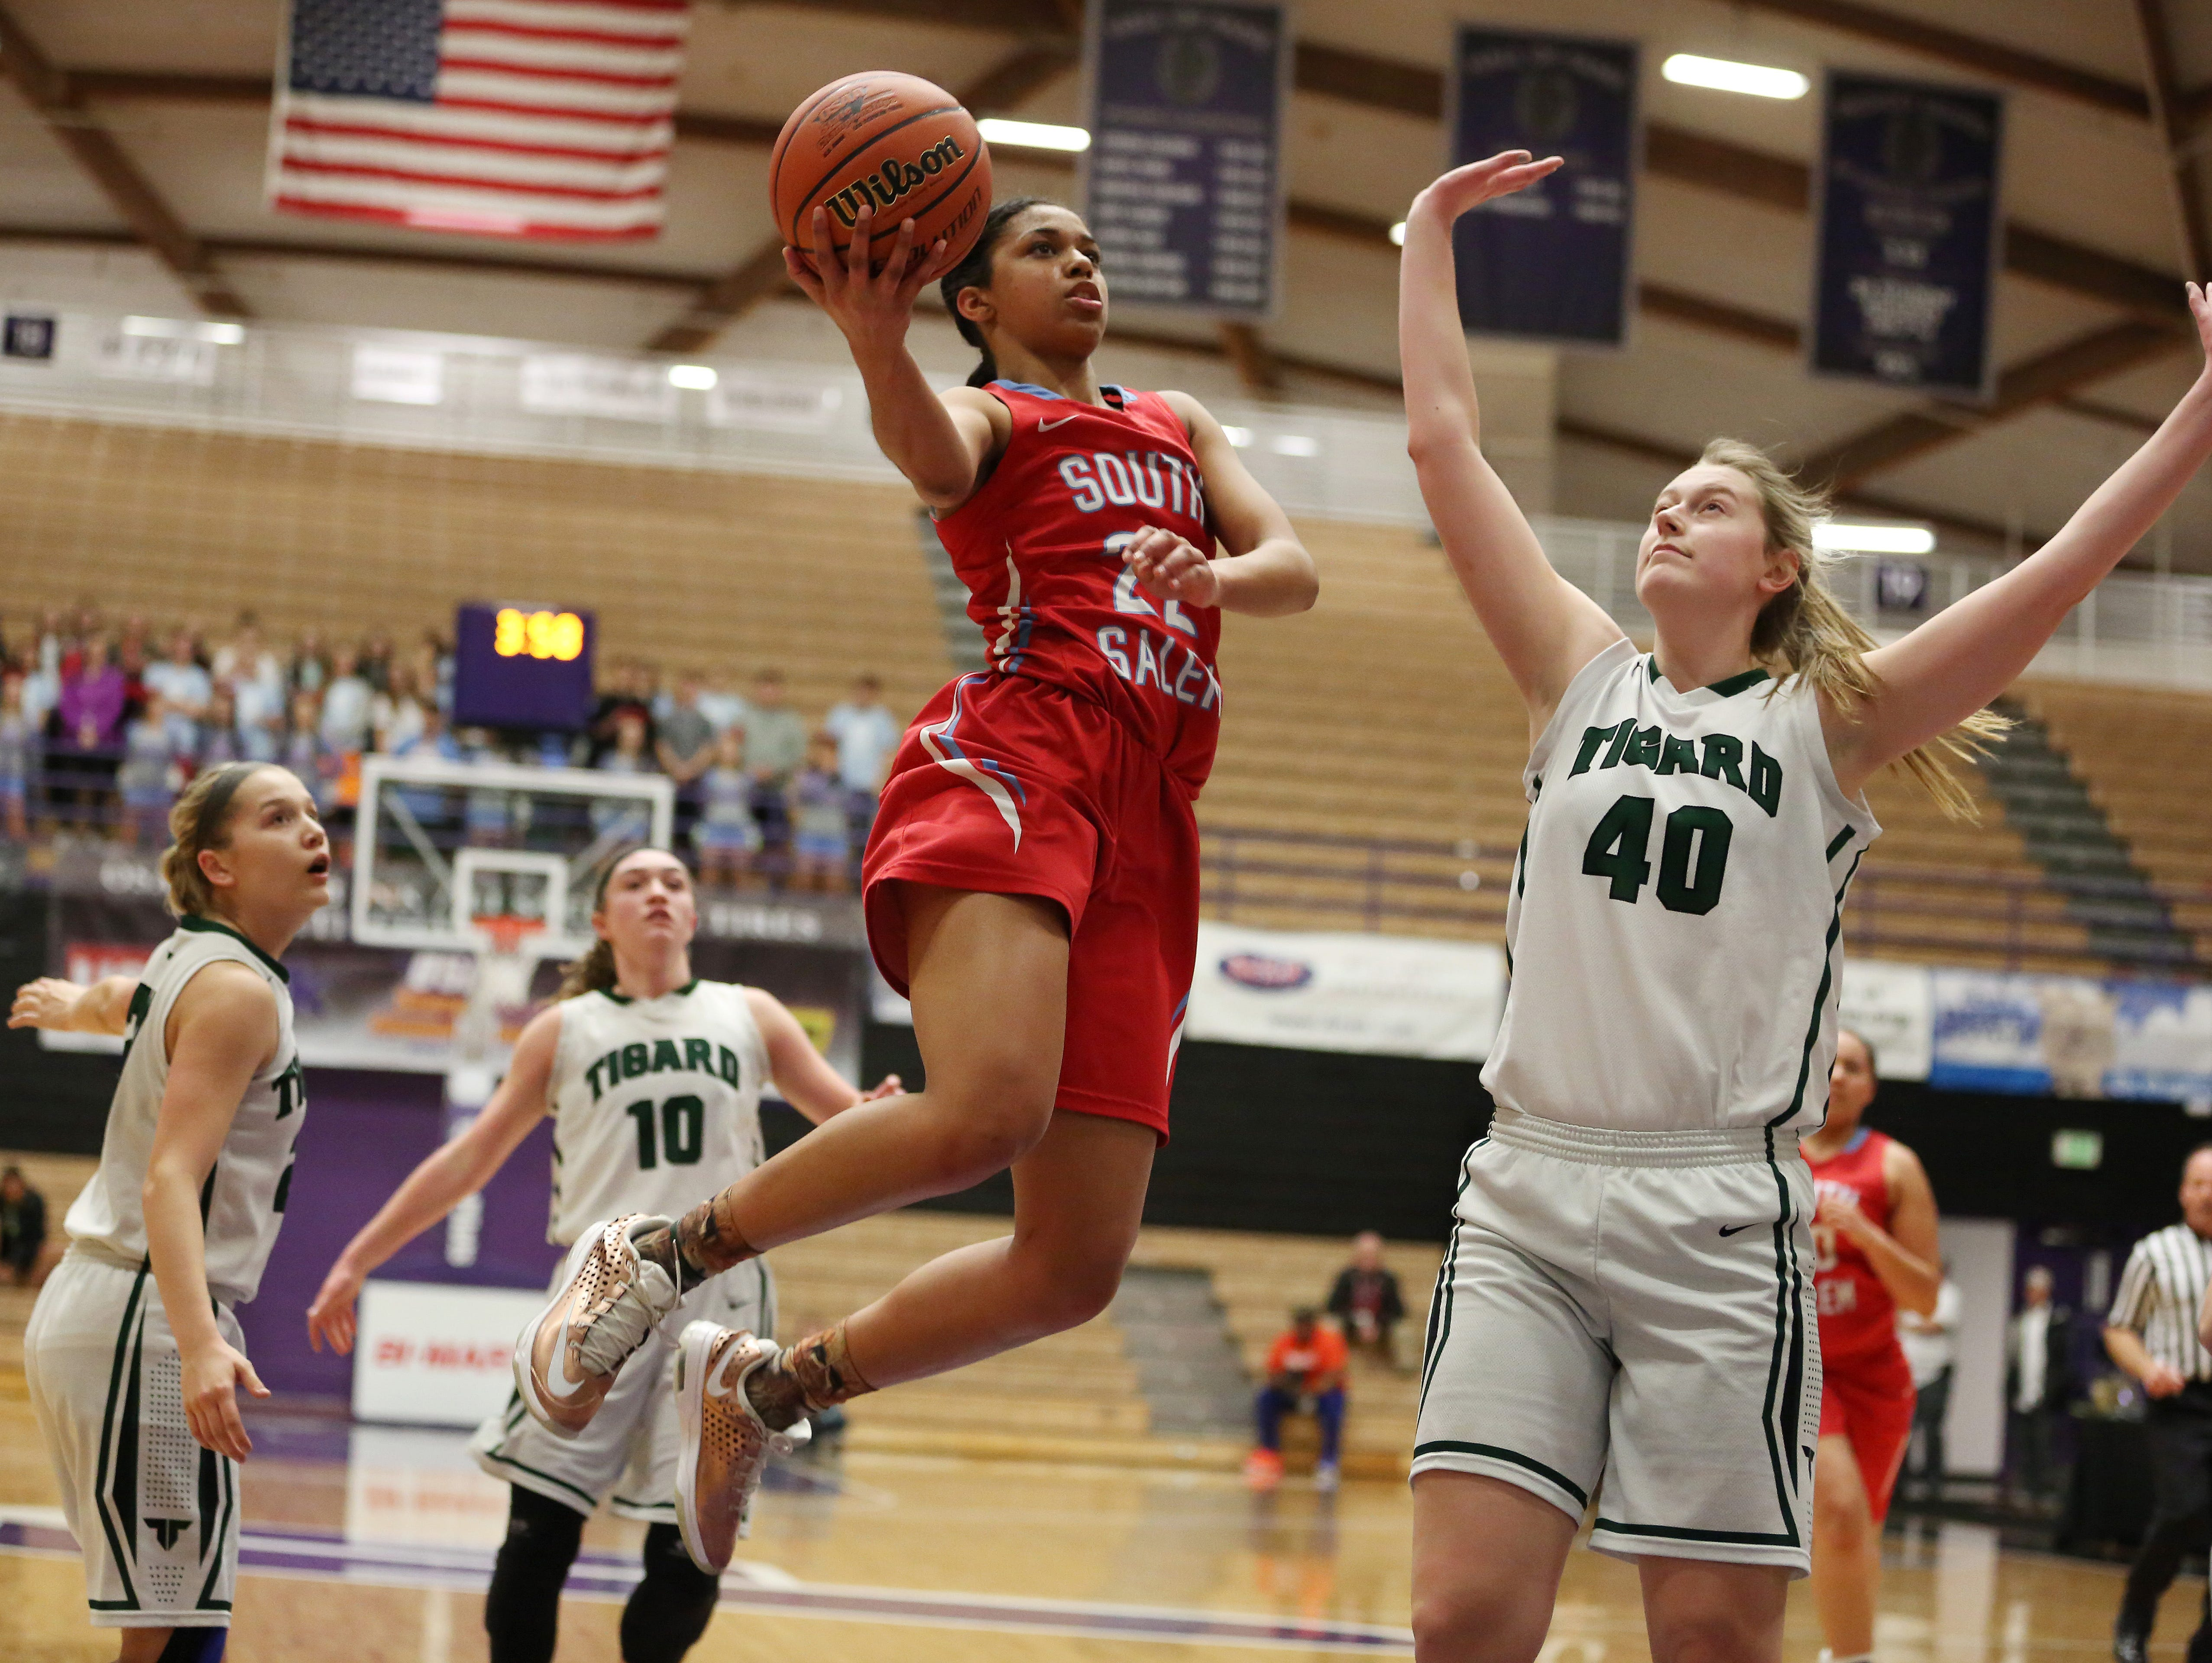 South Salem's Evina Westbrook helped lead the Saxons to a repeat state championship and was named Class 6A girls basketball player of the year.